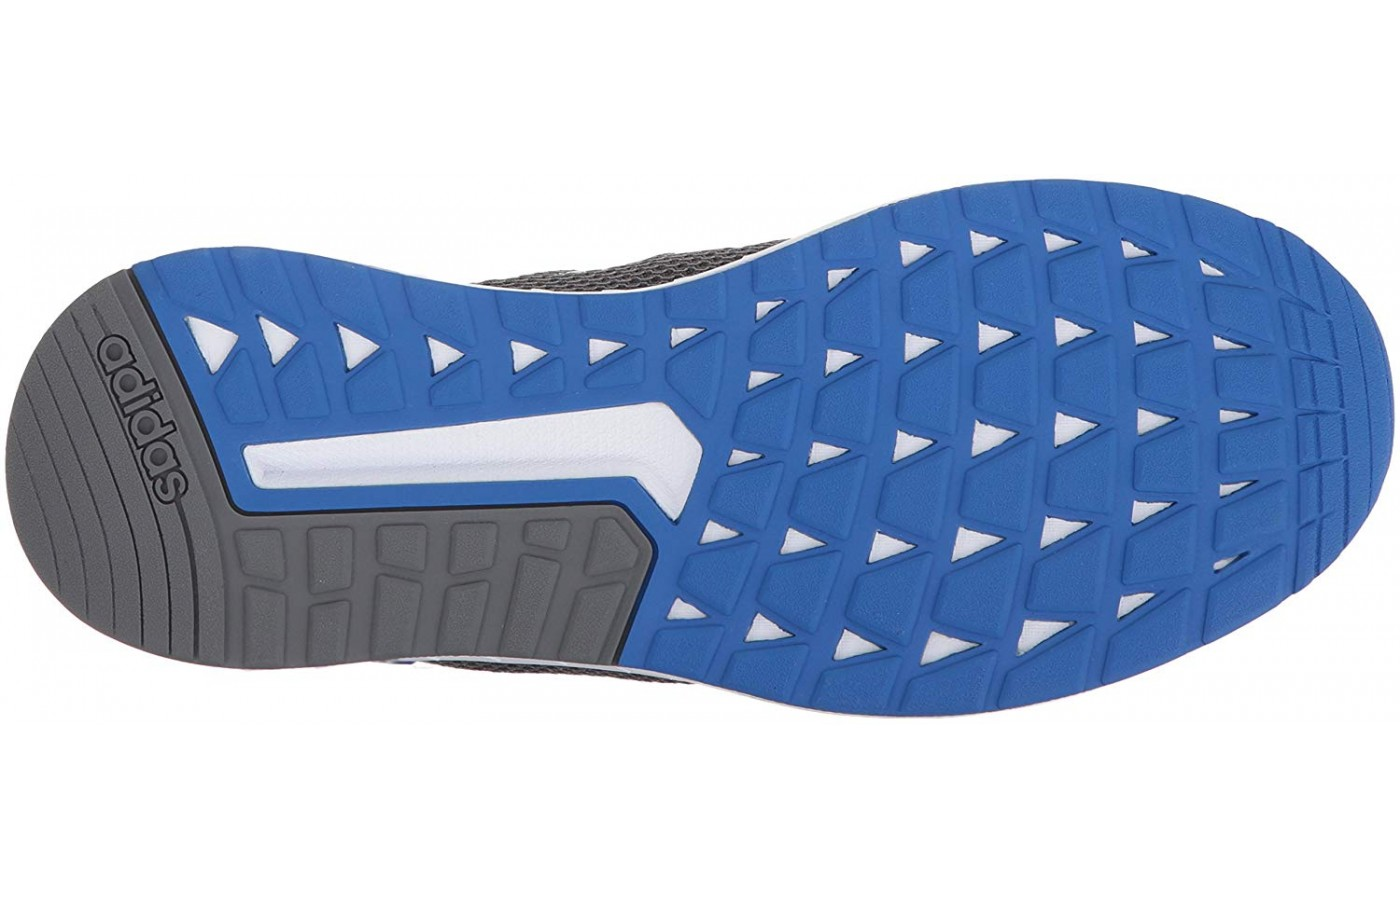 Adidas' Questar Ride offers a non-slip rubber sole for superior traction.